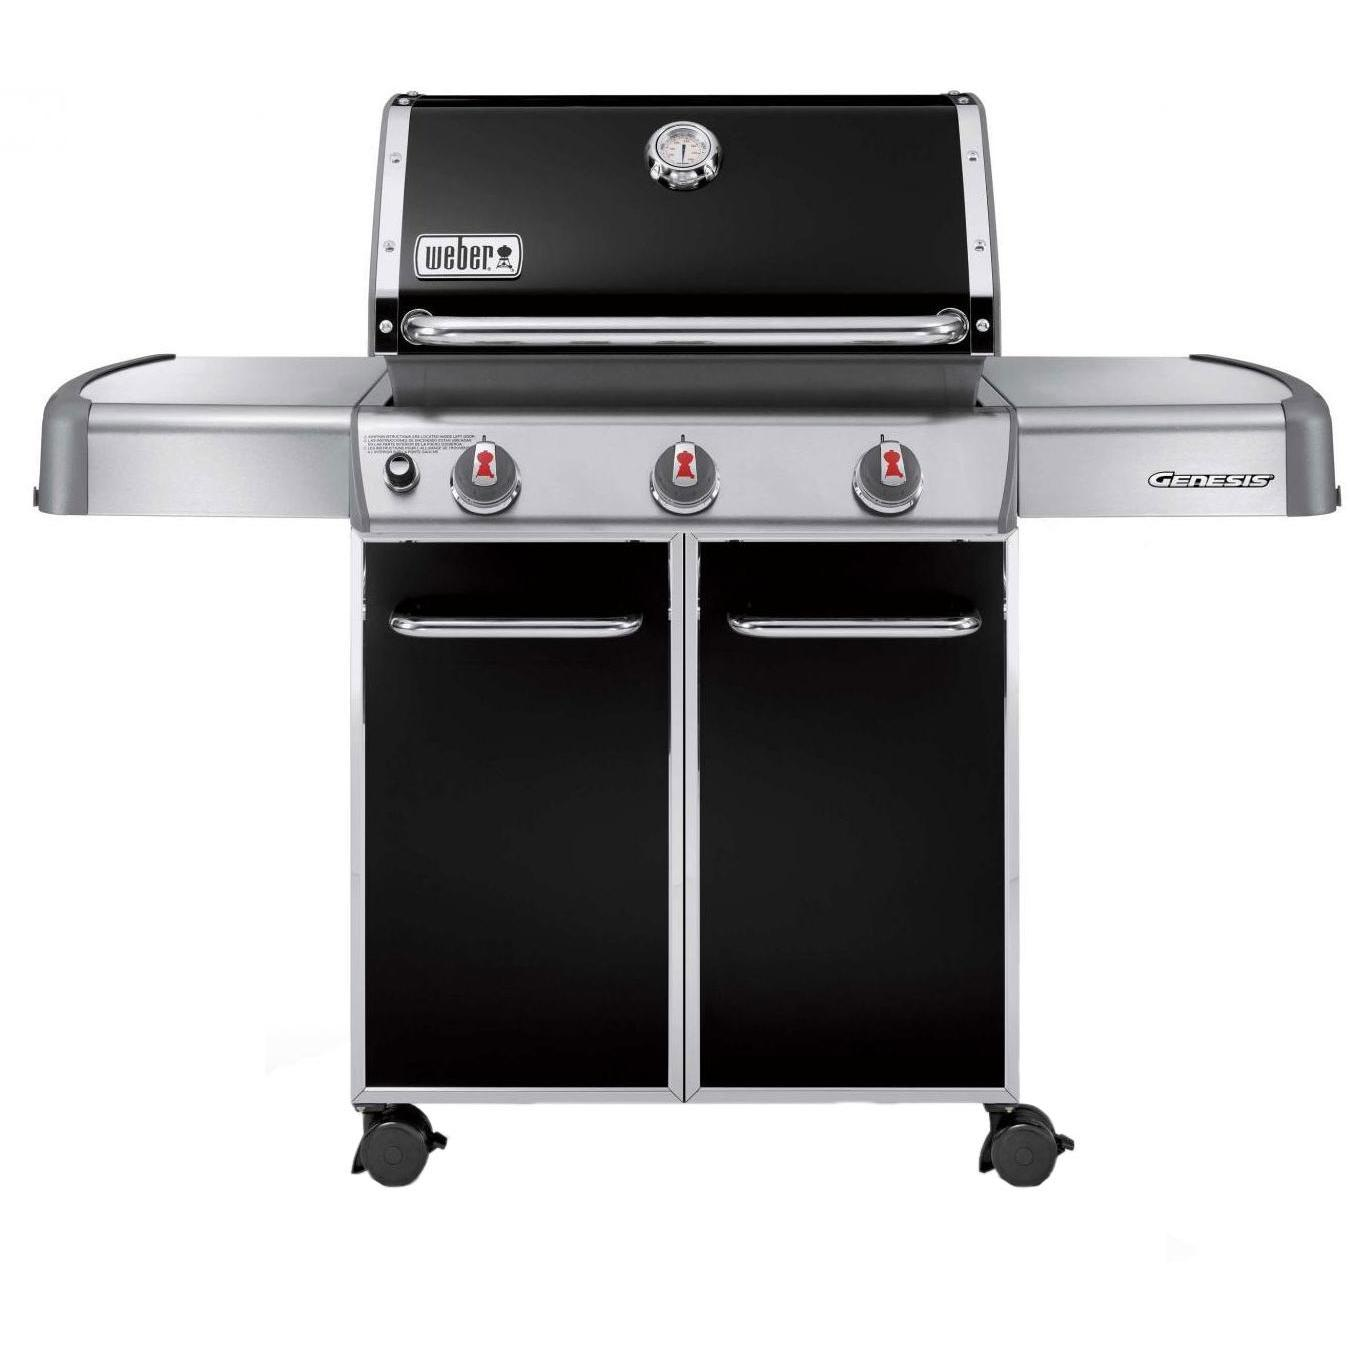 Weber Genesis E-310 Natural Gas Grill On Cart - Black 2786270